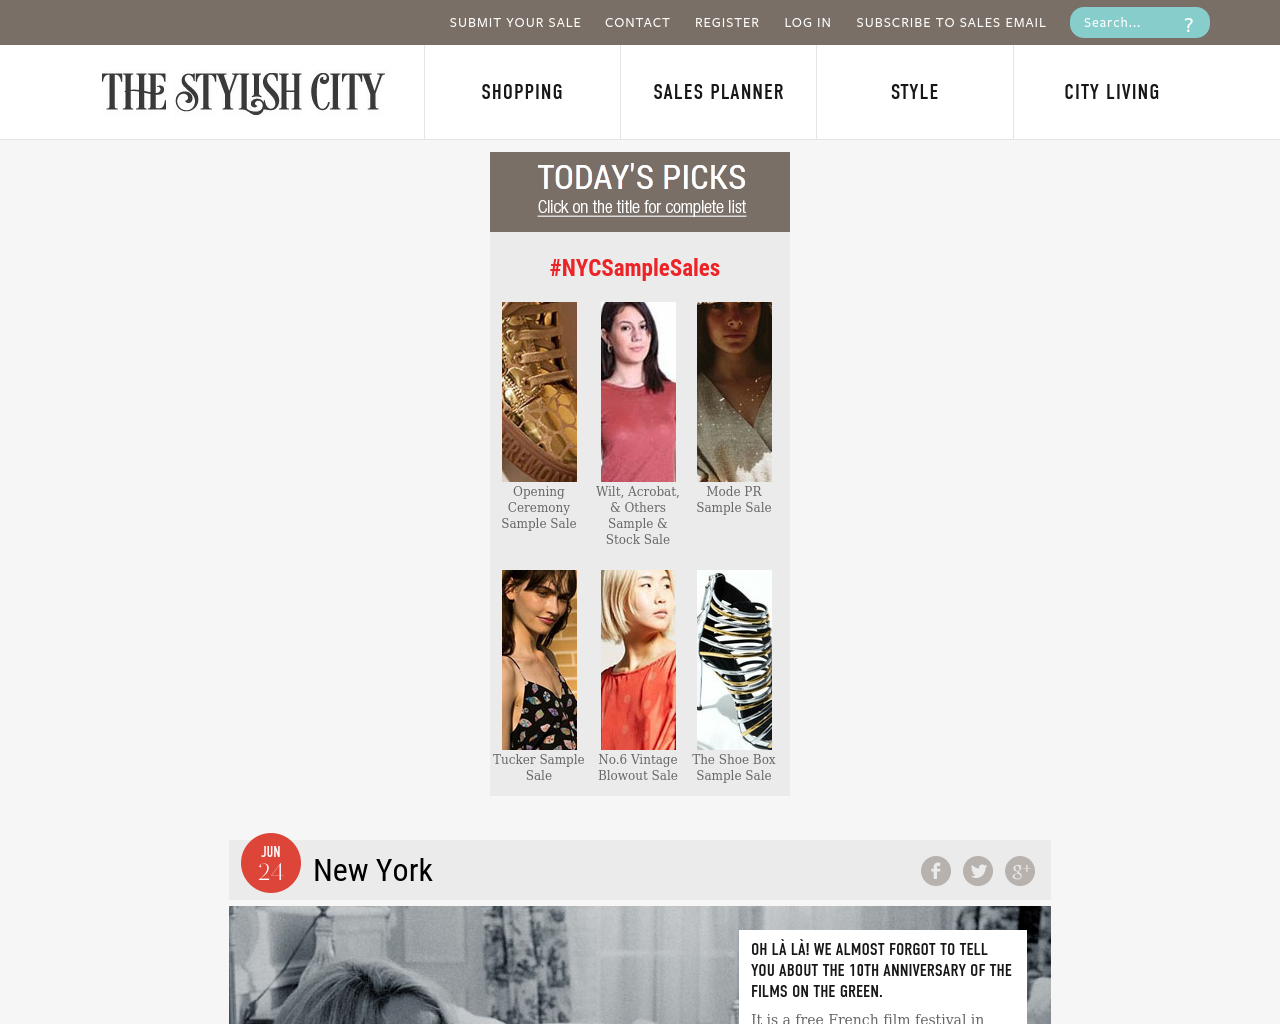 THEstylishCITY-Advertising-Reviews-Pricing